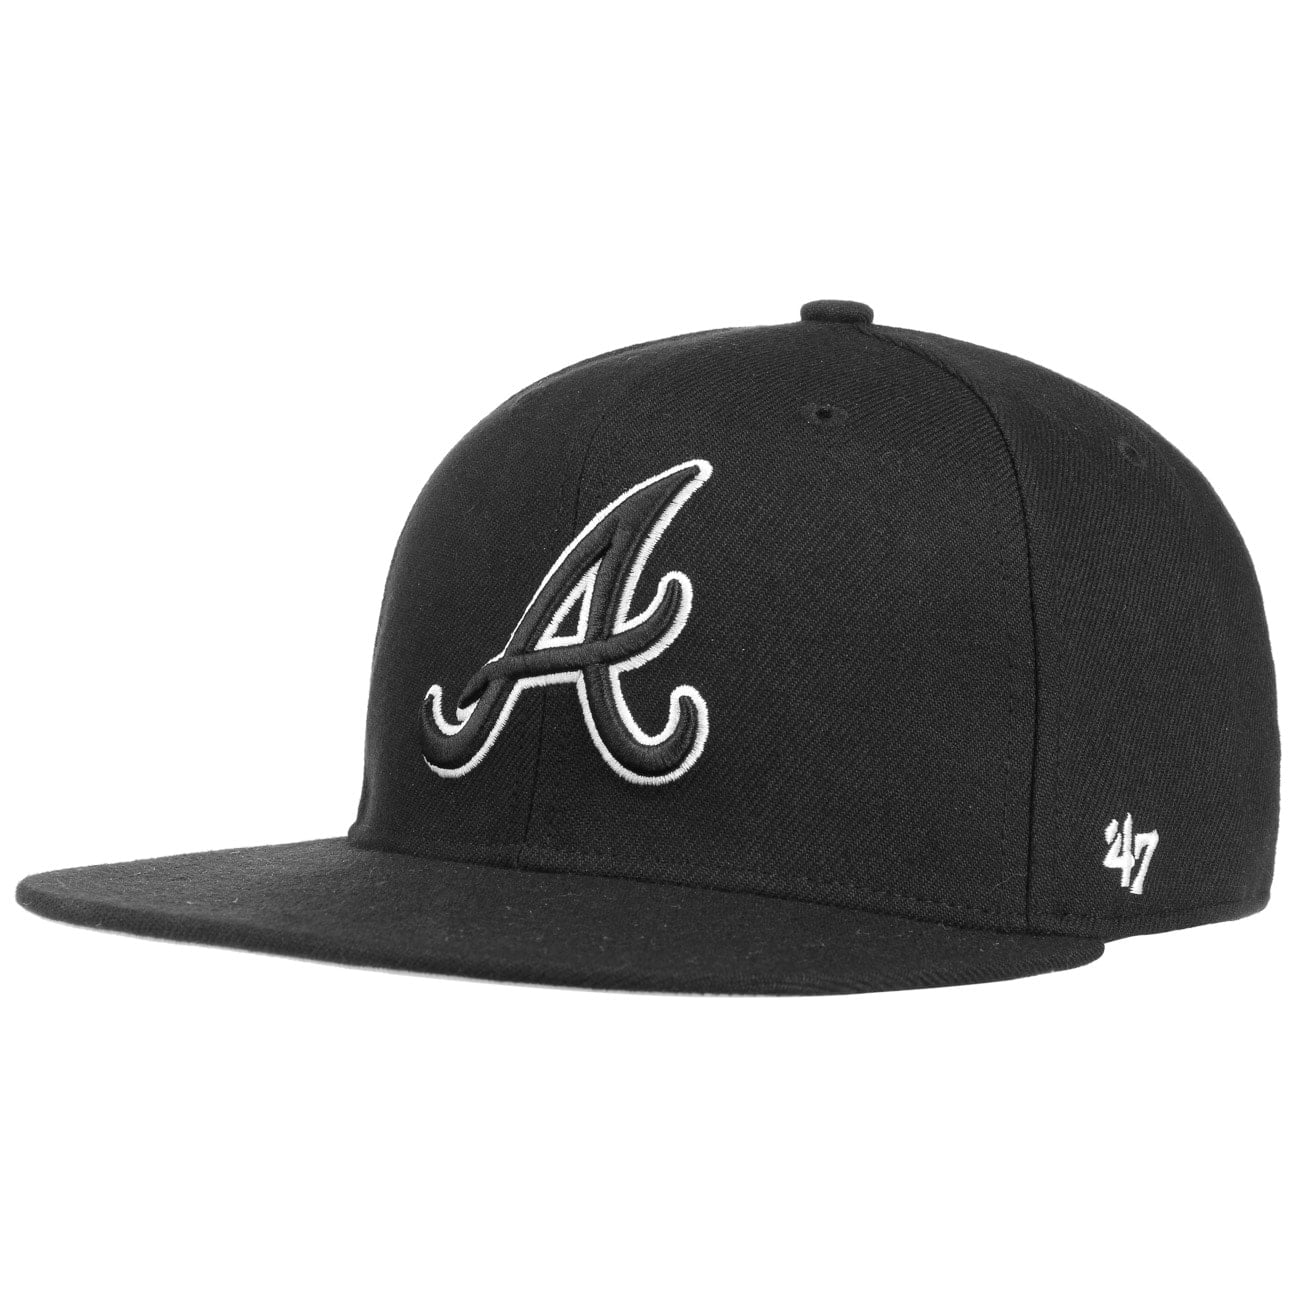 Gorra Captain Sureshot Braves by 47 Brand  gorra de baseball